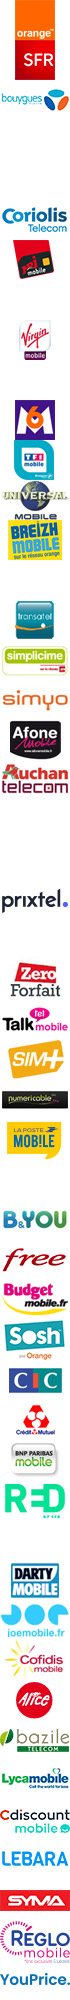 forfait SFR Carr� Tablette et Cl� 1 Go (version �co) 1 Go. Sans engagement